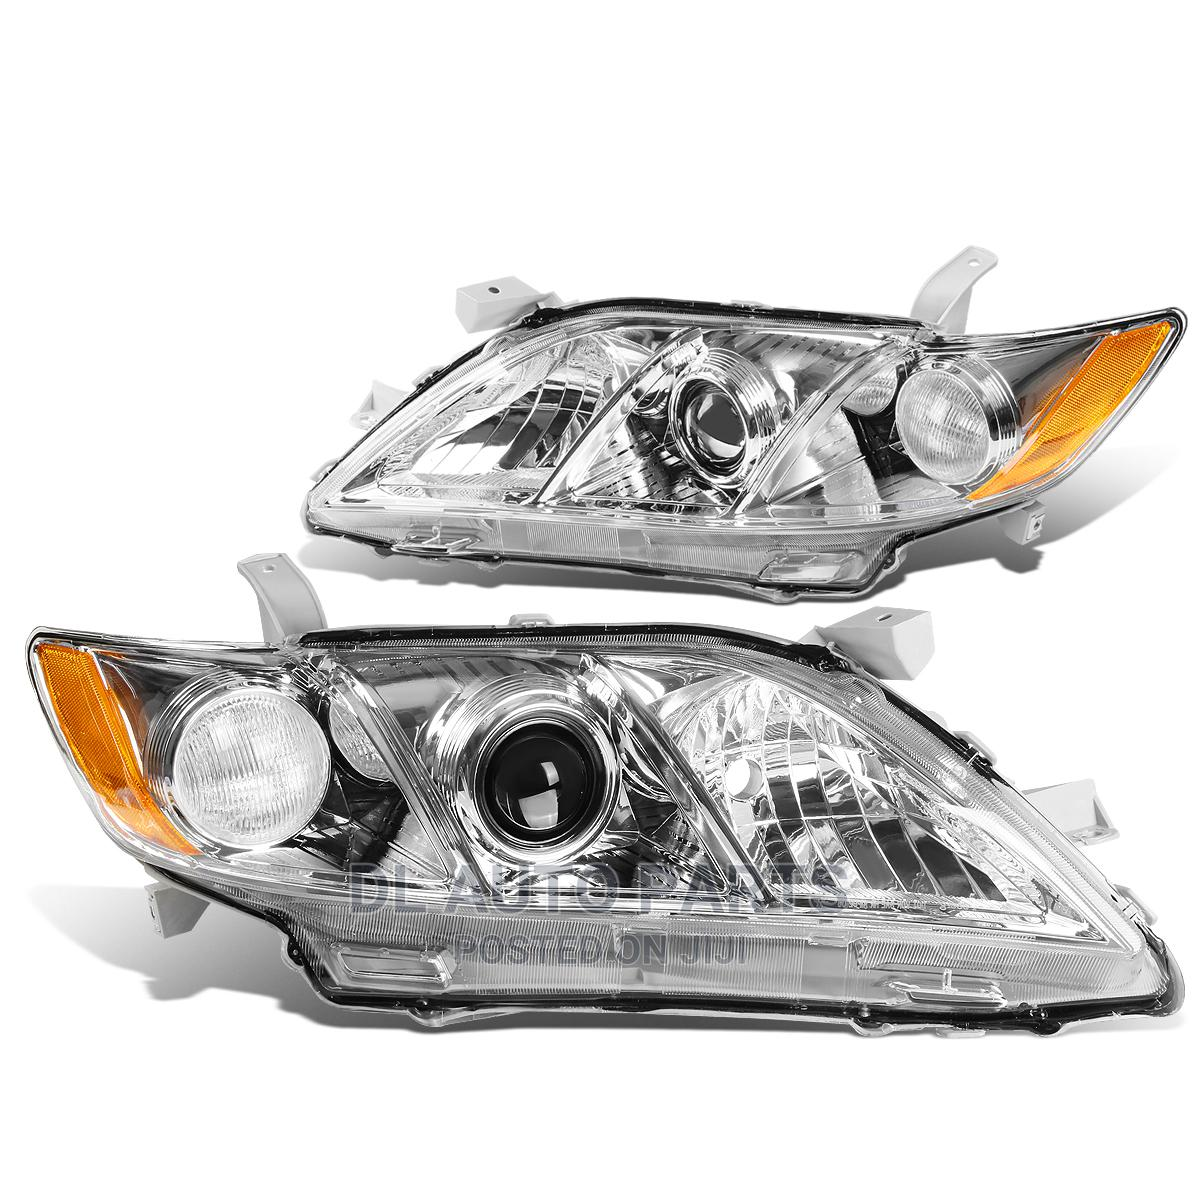 Camry 2007 Headlight